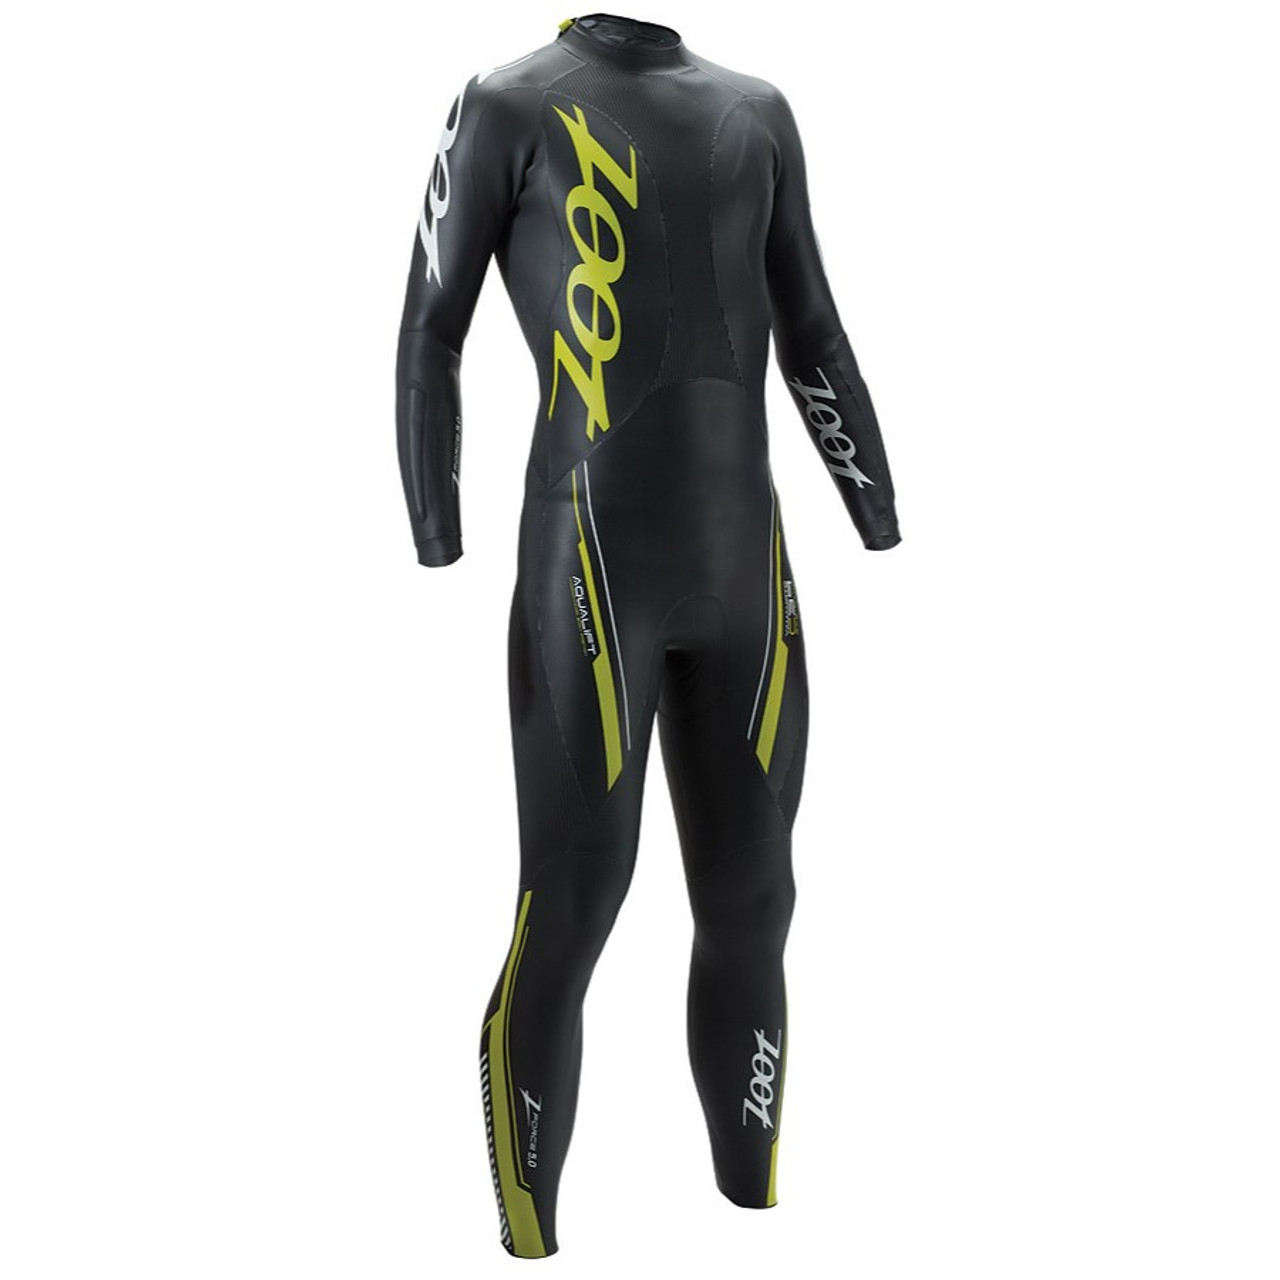 1dfddaae79 Zoot Men s Z Force 5.0 Wetzoot Wetsuit - 2016 - Triathlete Sports